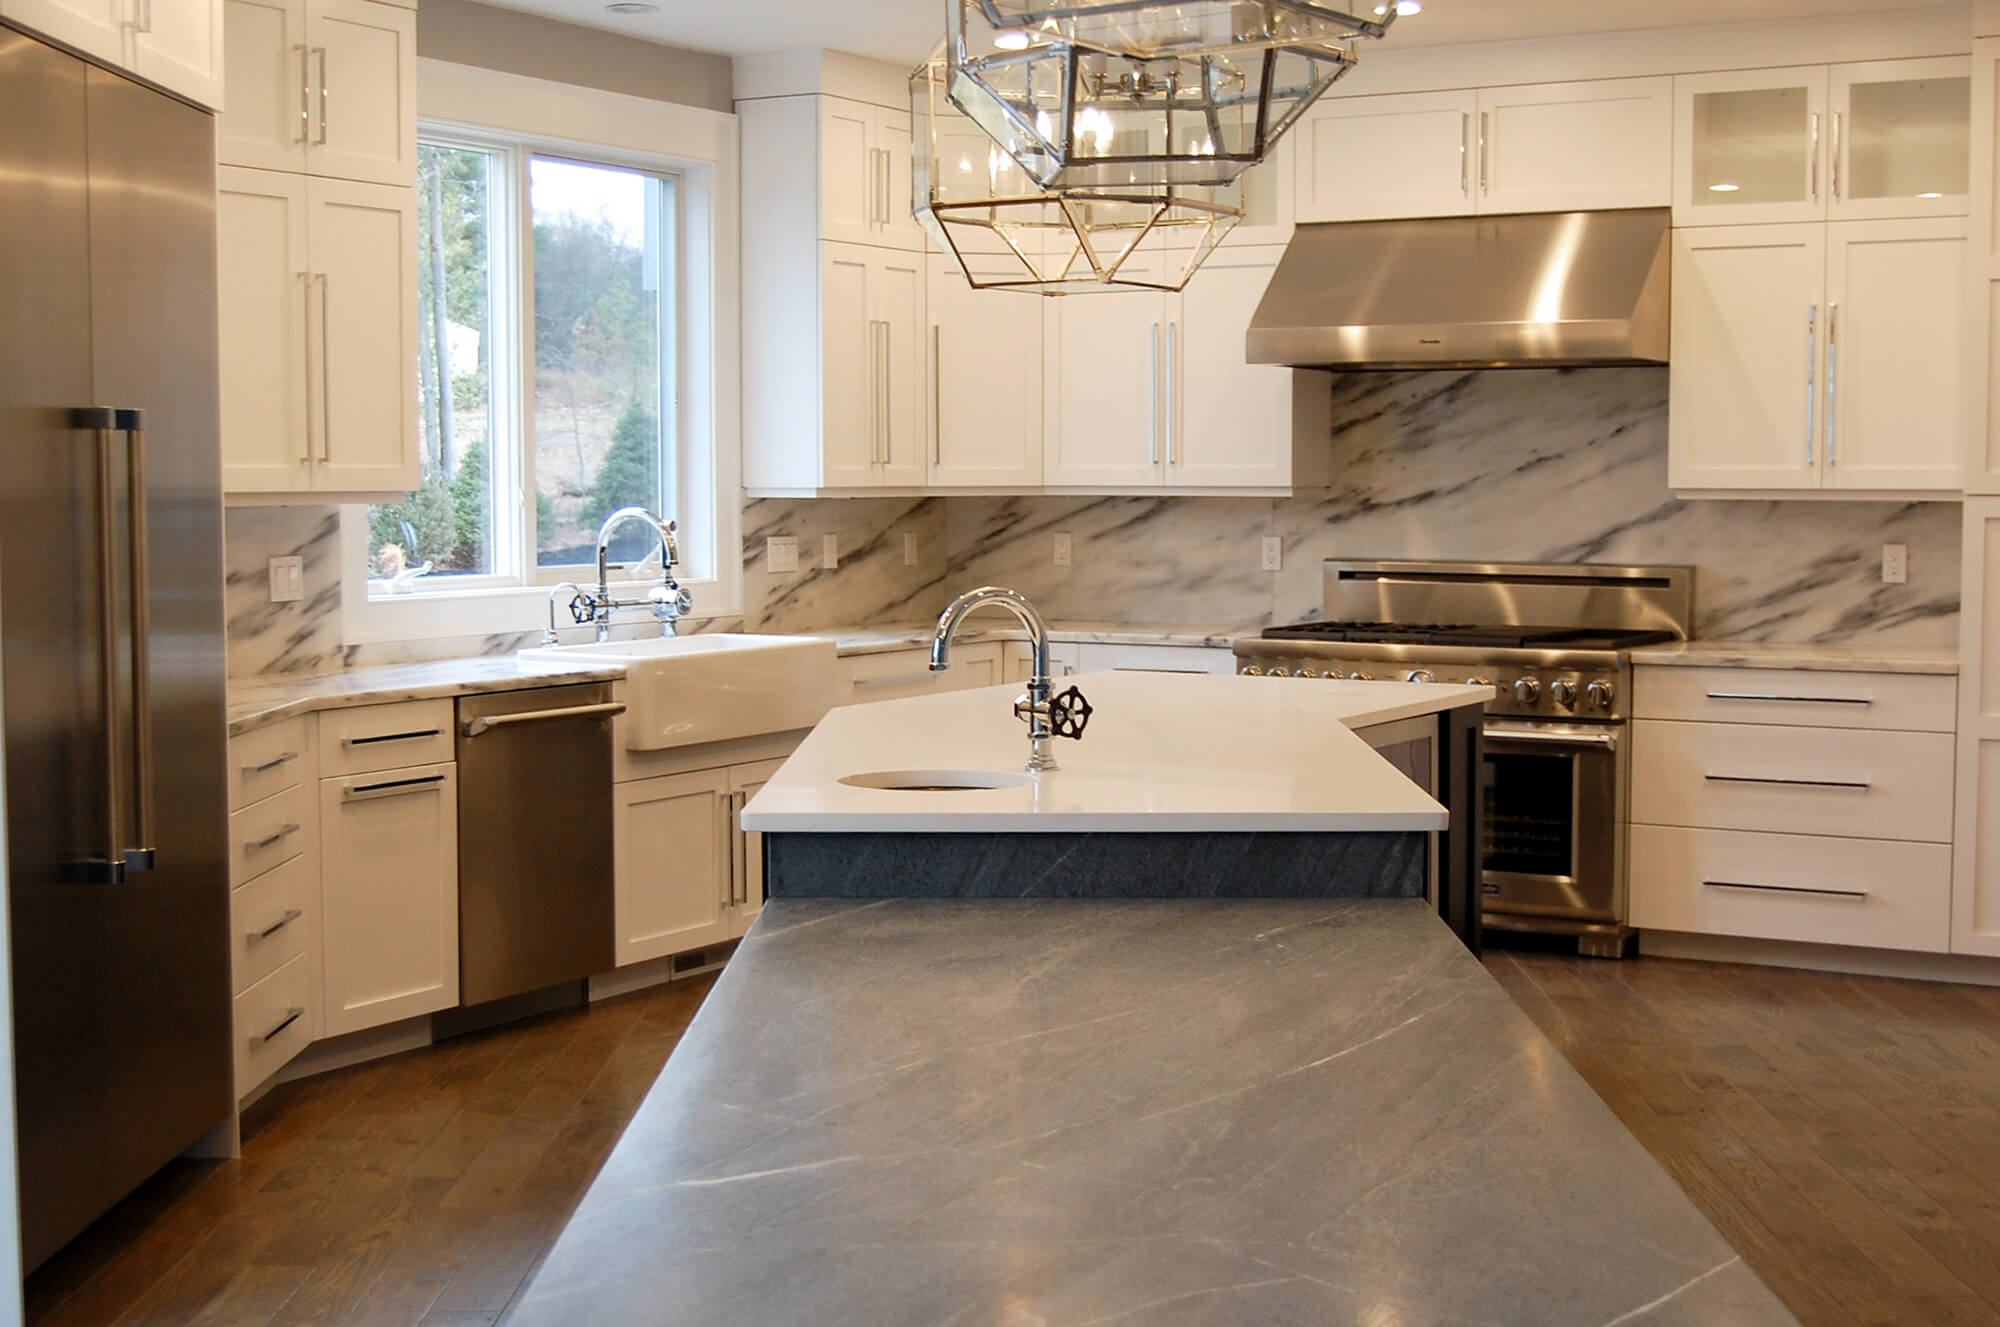 High End Kitchen Interior - Trask Development